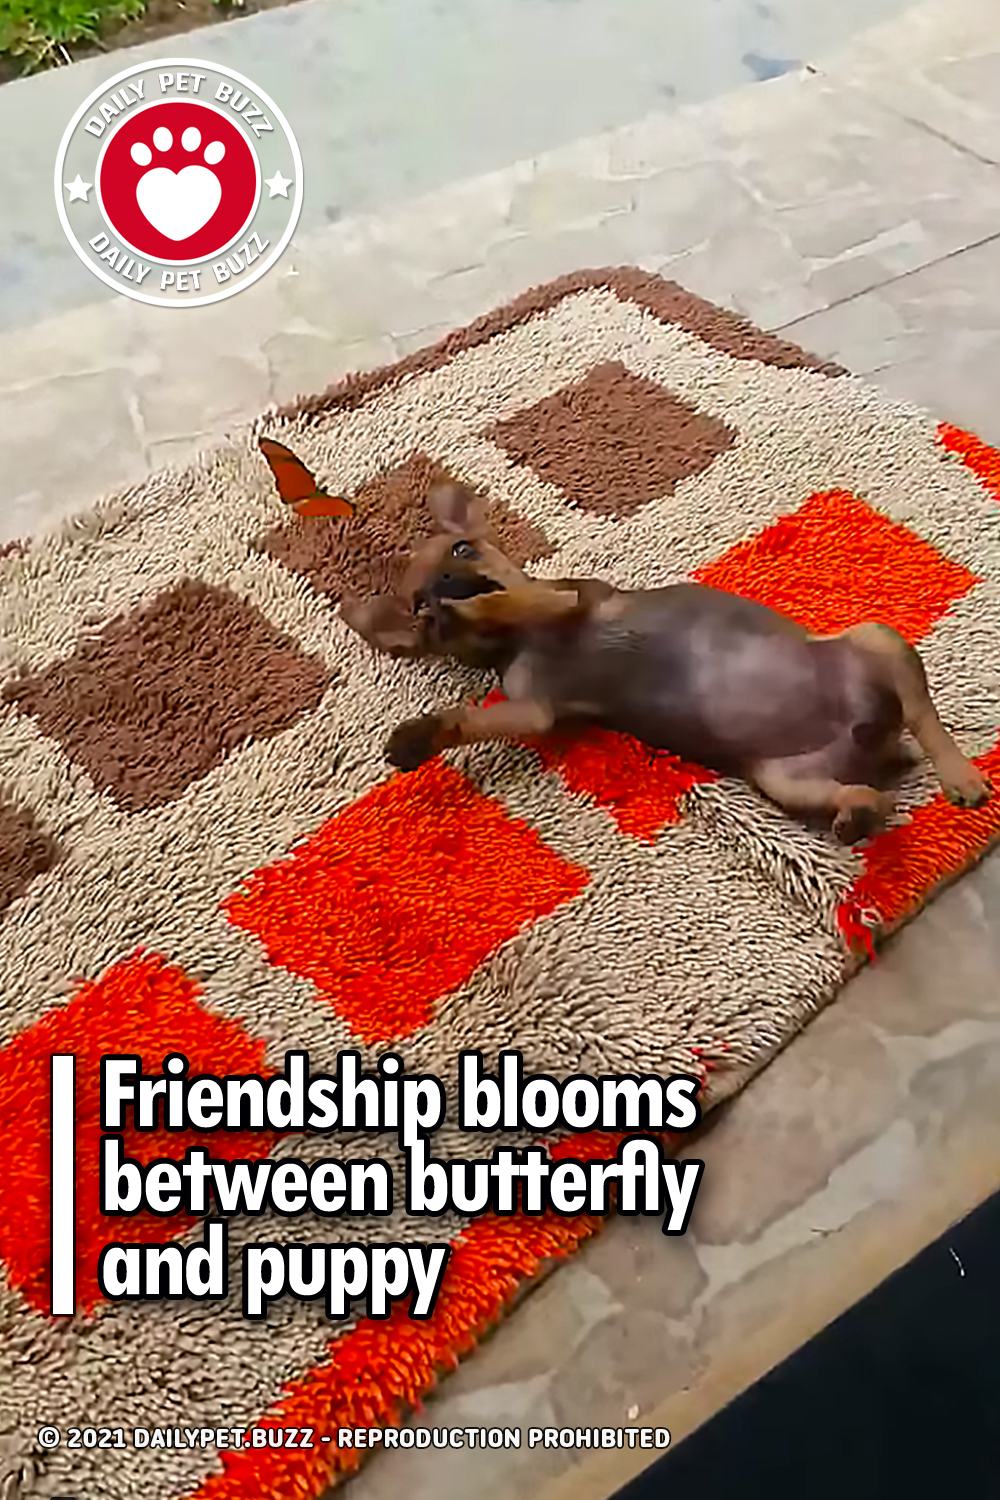 Friendship blooms between butterfly and puppy